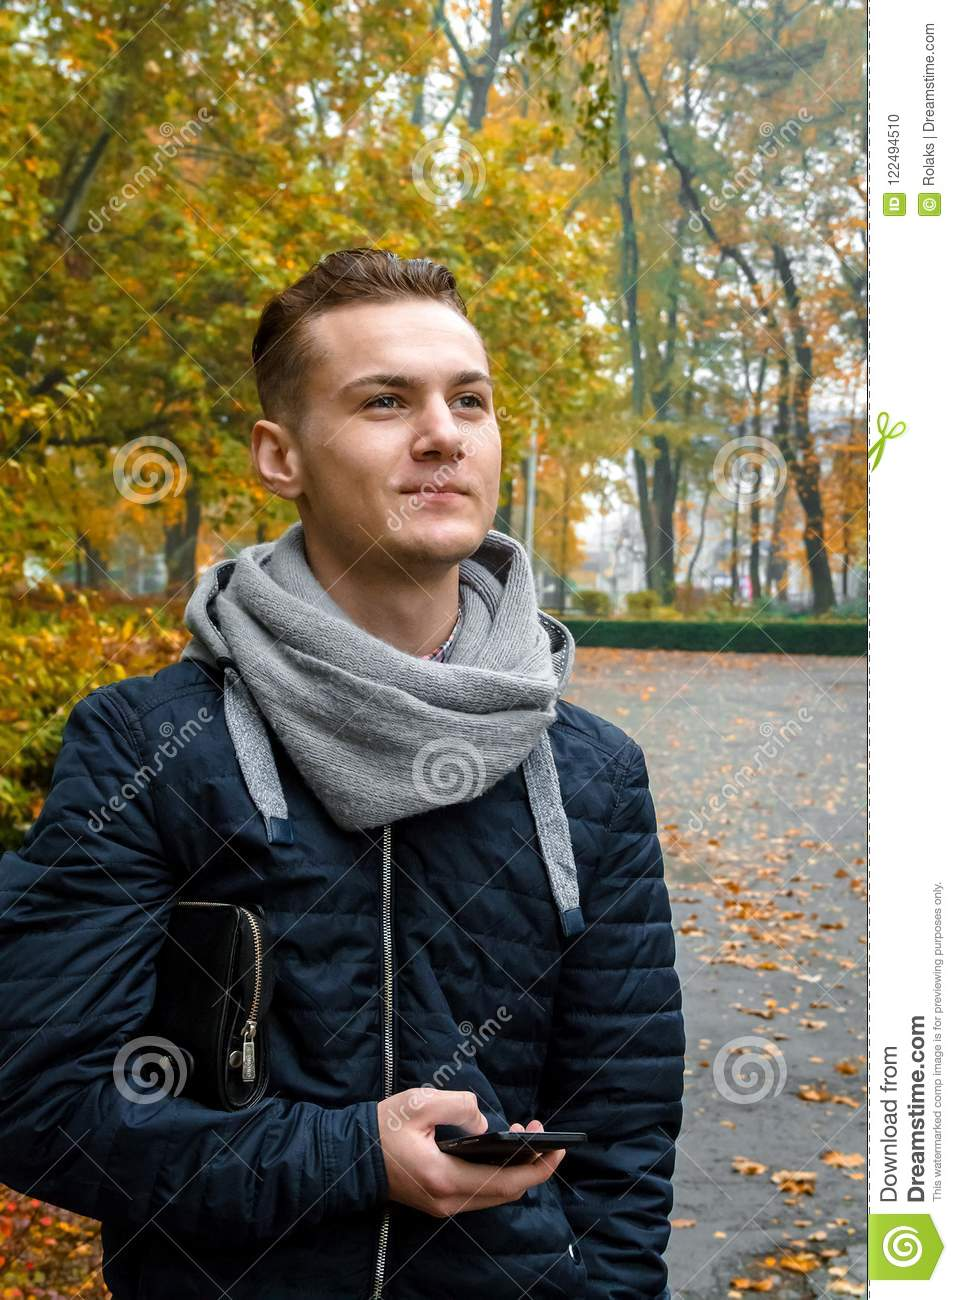 Cute young man with smartphone